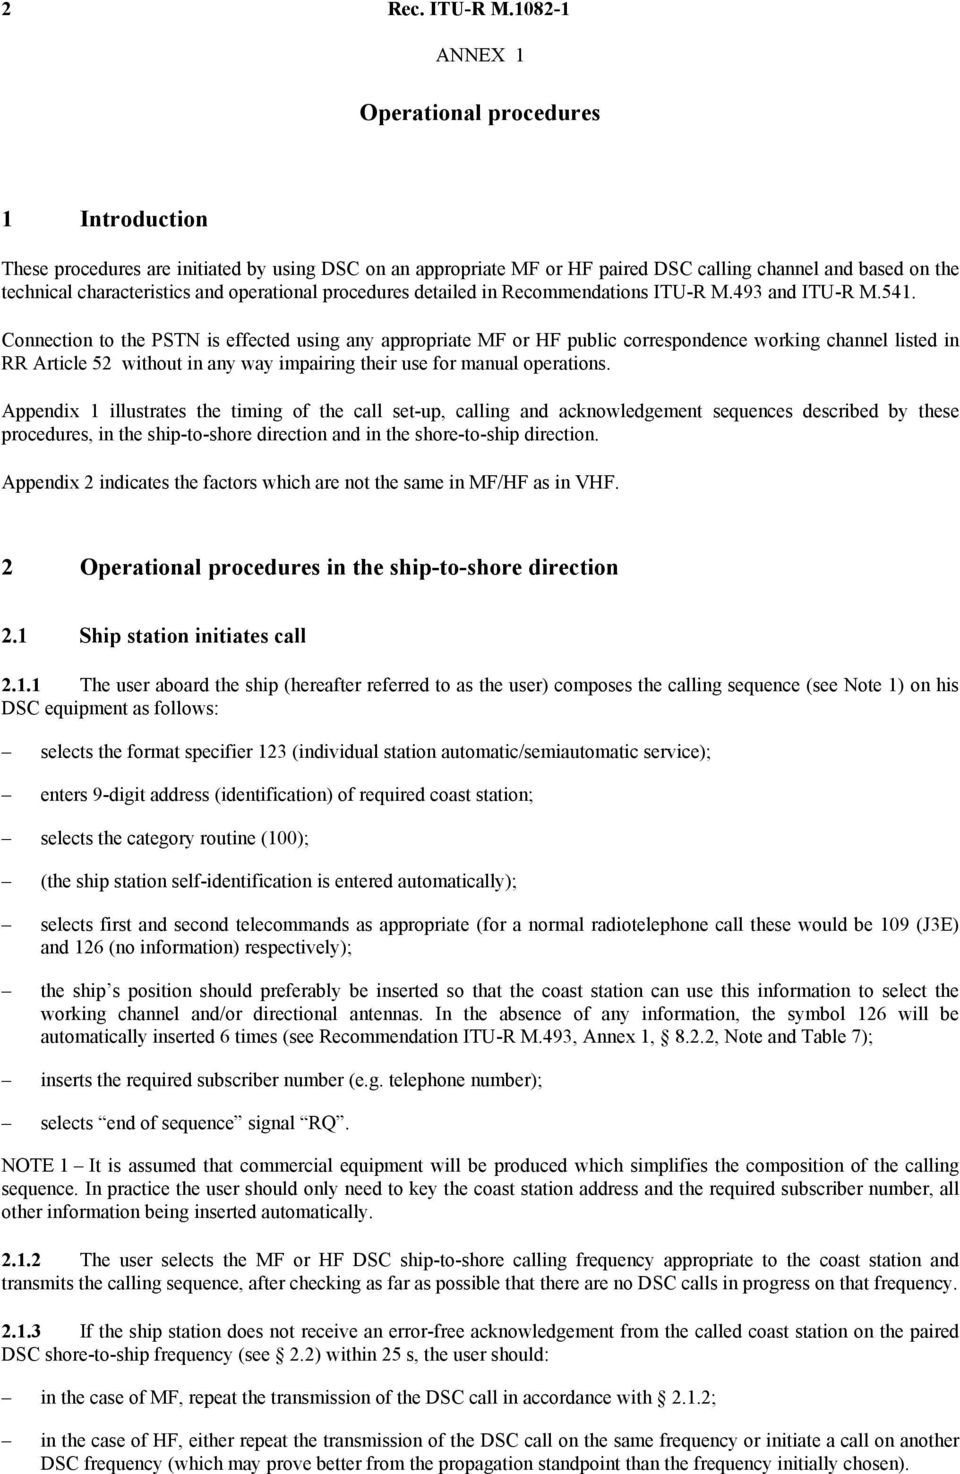 operational procedures detailed in Recommendations ITU-R M.493 and ITU-R M.541.